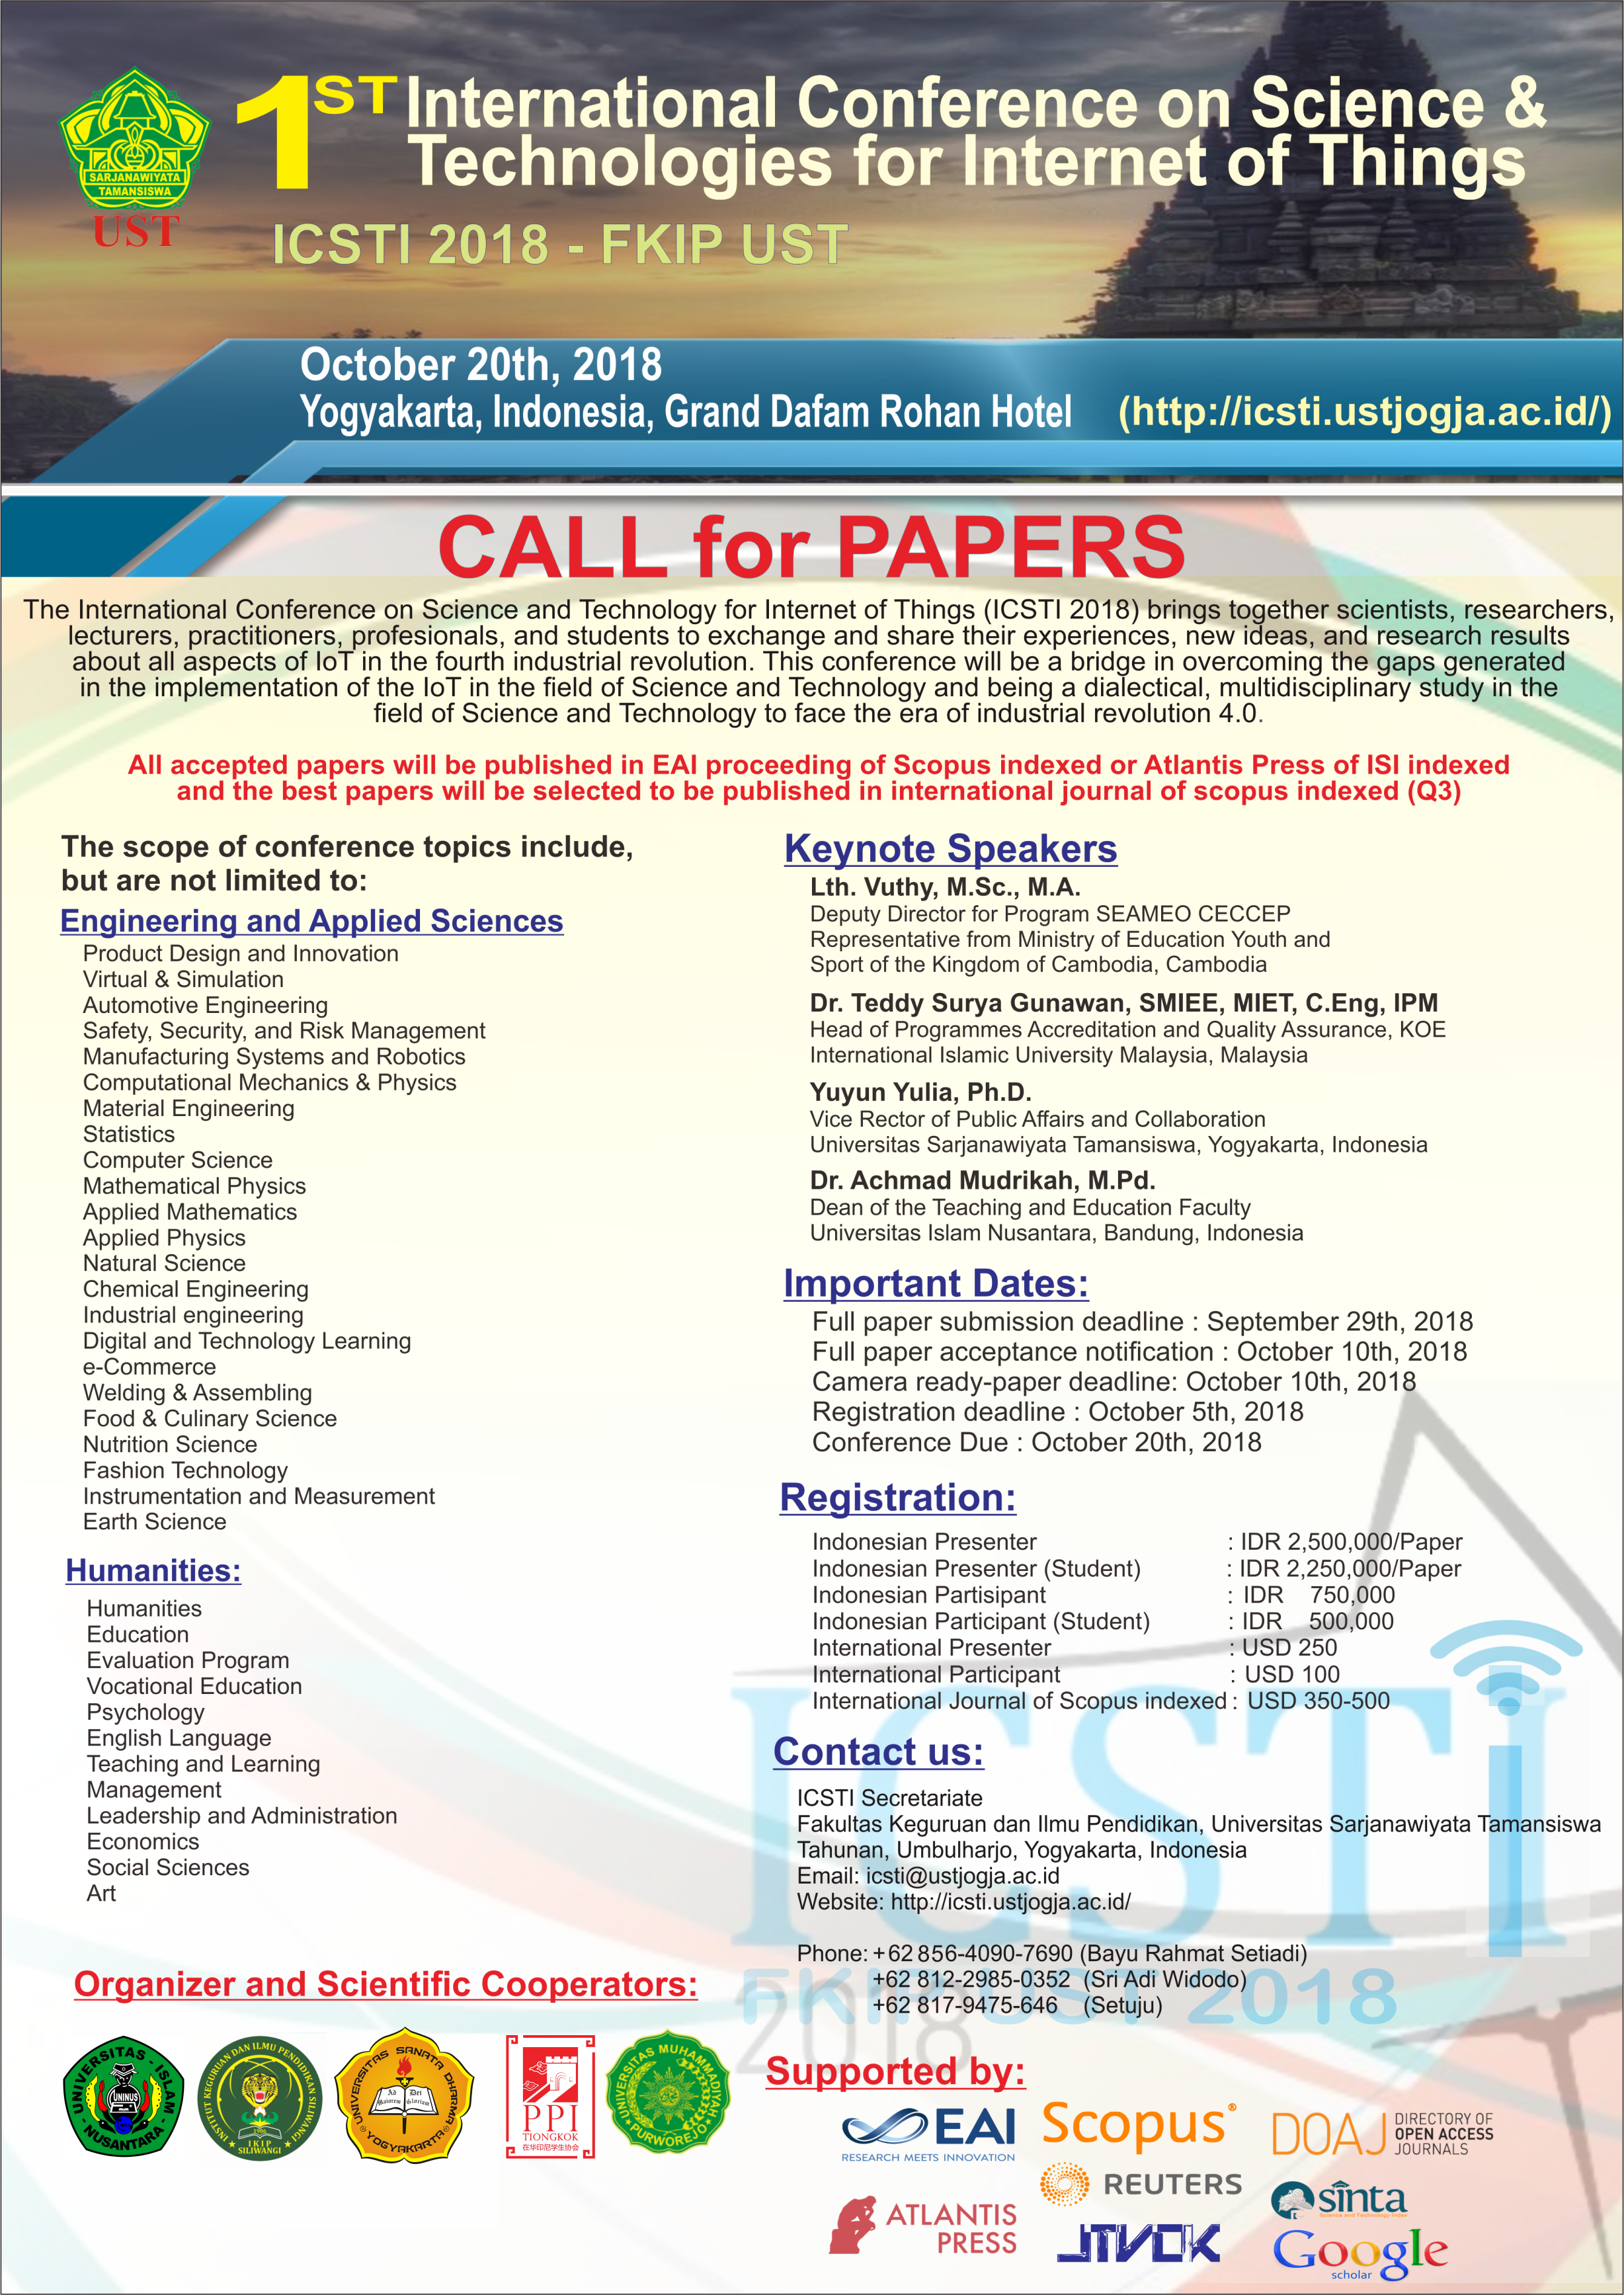 1st International Conference on Science & Technologies for